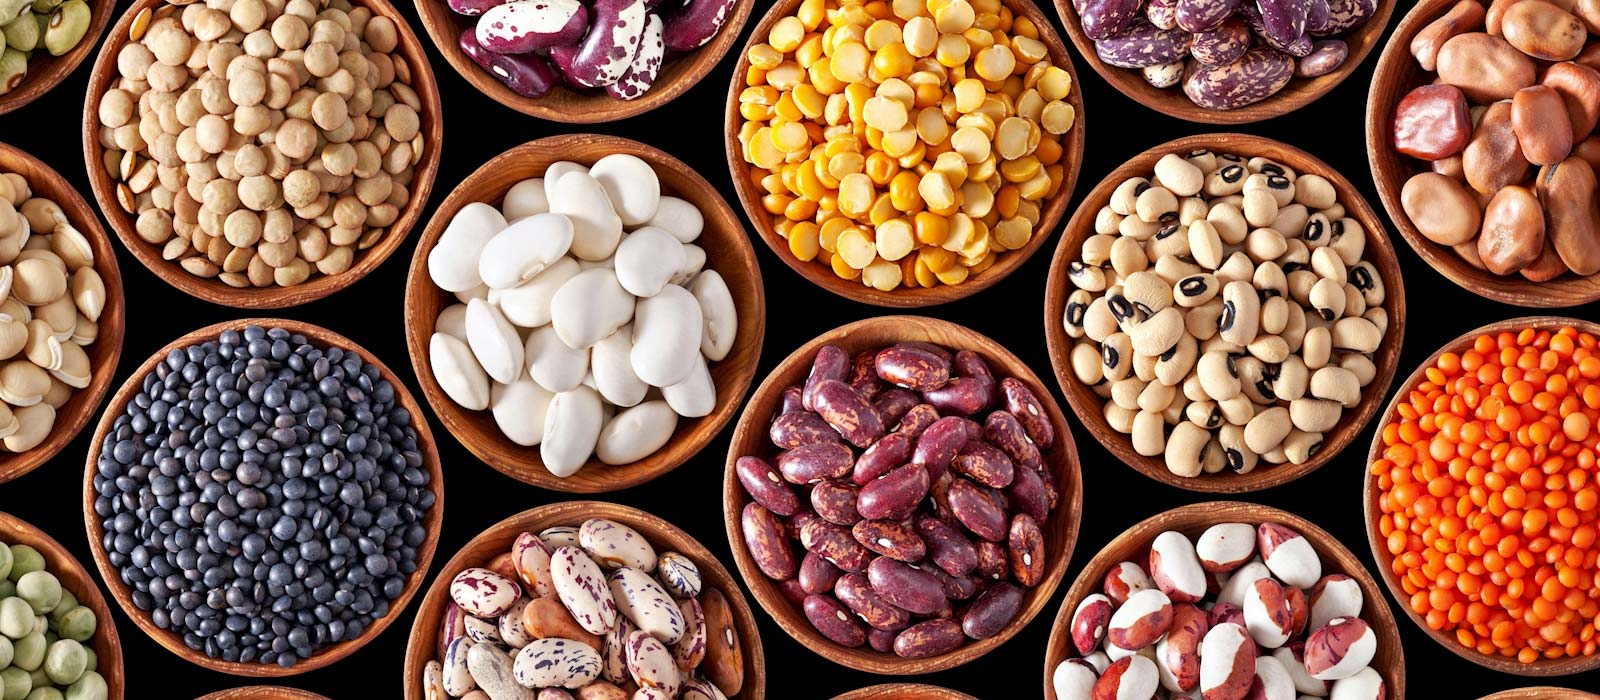 Legumes Bad For You ?